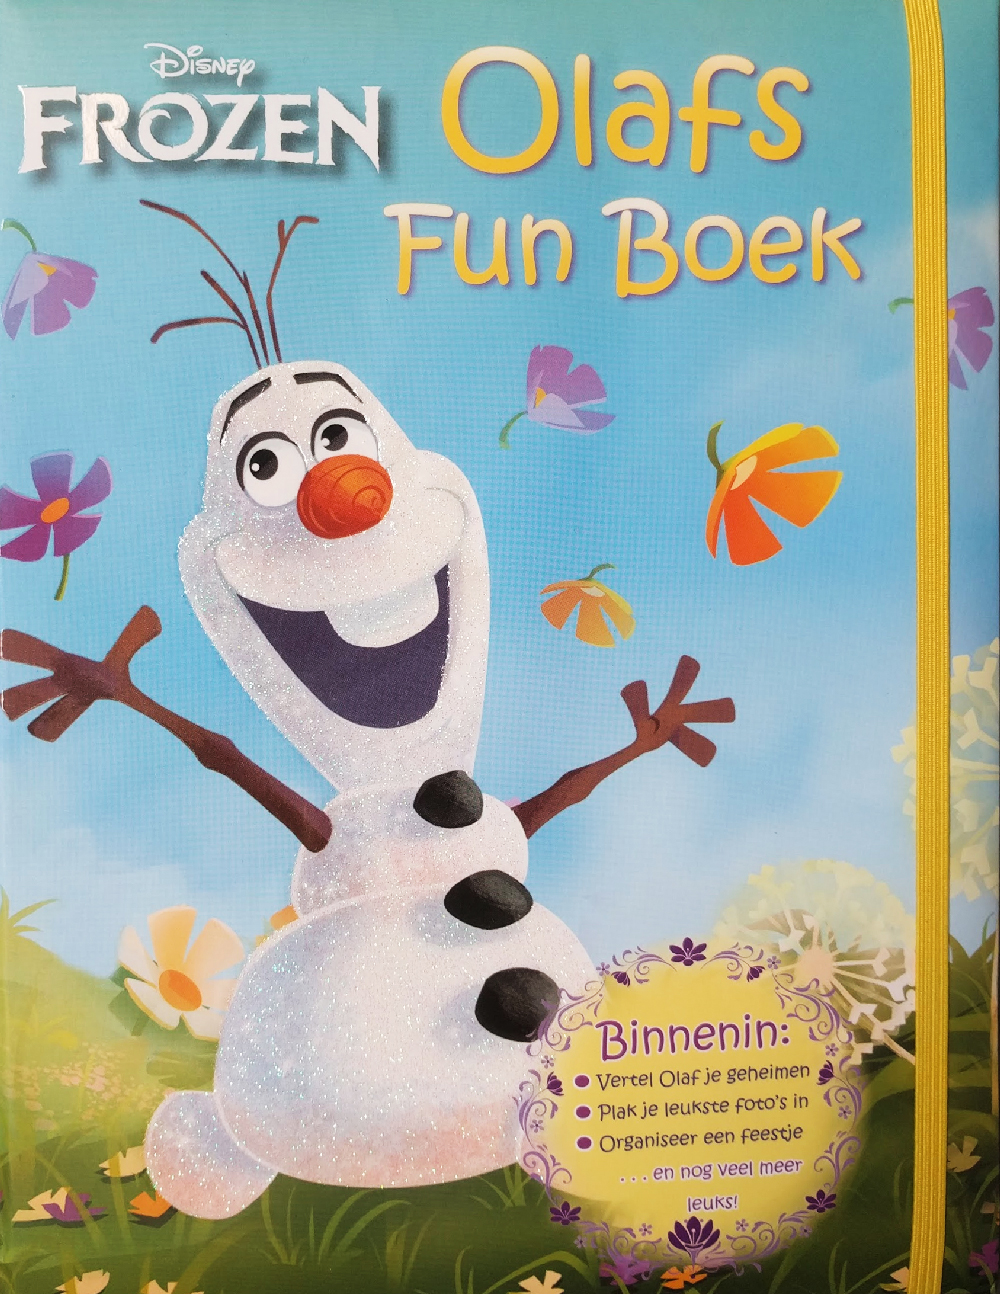 Disney Frozen Olafs funboek